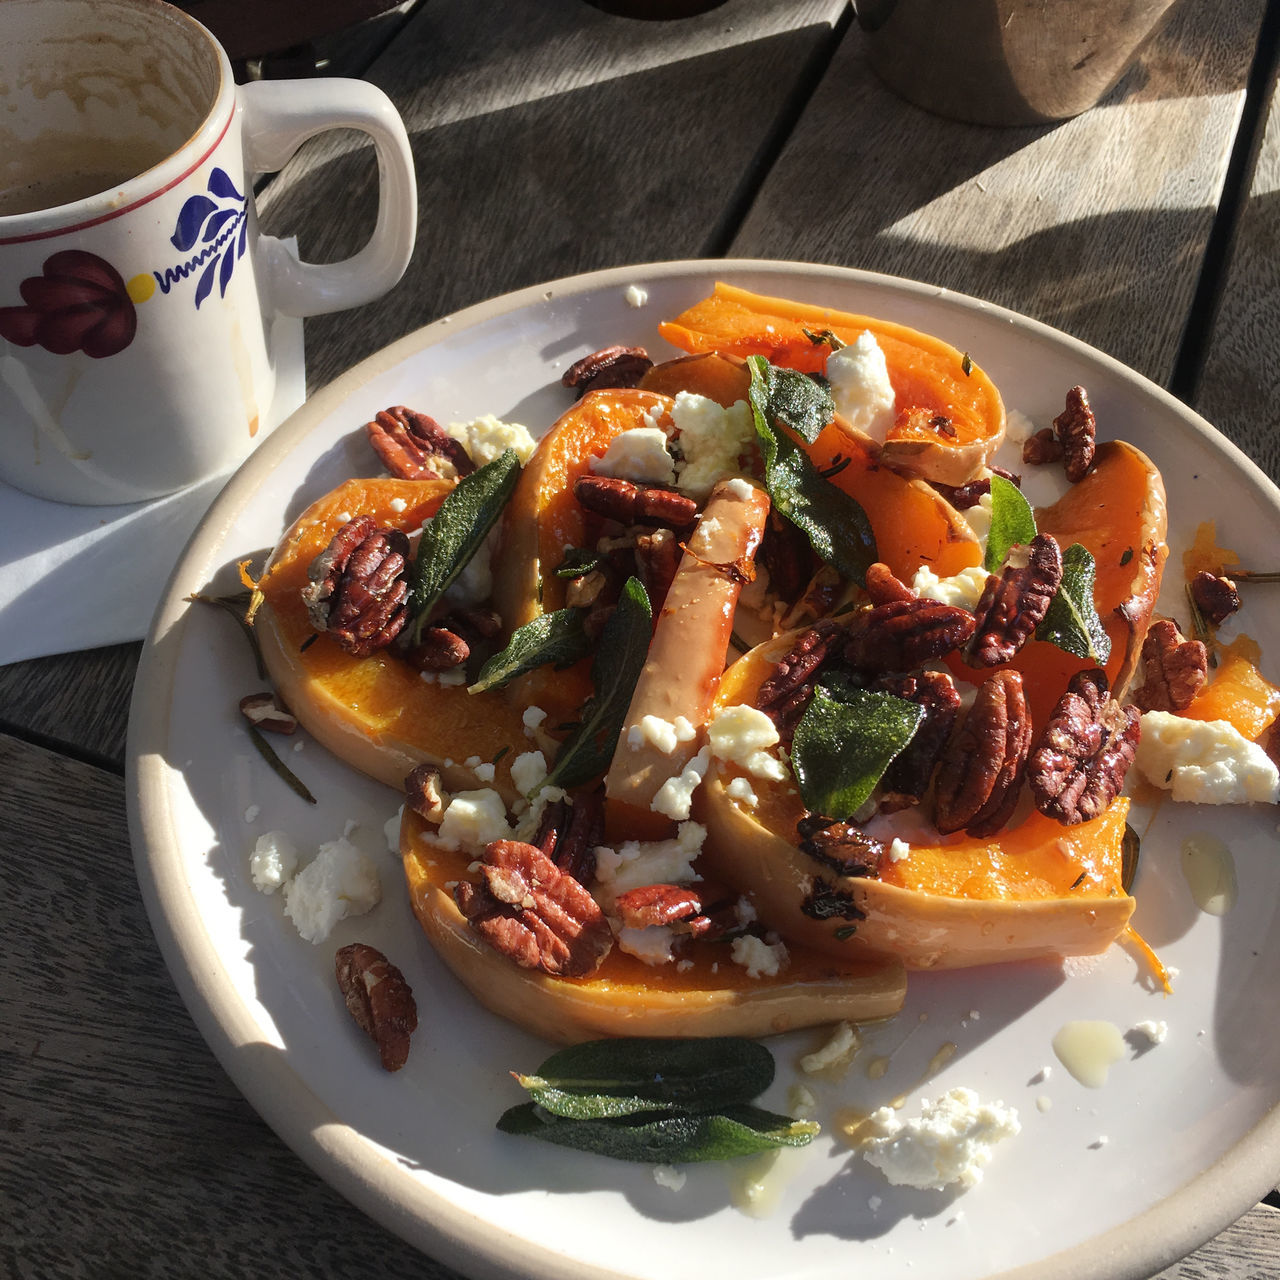 Roasted butternut squash with pecans and feta and a cappuccino Autumn Colours Autumn Sun Butternut Squash Cappuccino ♥ Cheese Close-up Comfort Food Day Feta Food Freshness Healthy Eating Lunch Maple No People Plate Ready-to-eat